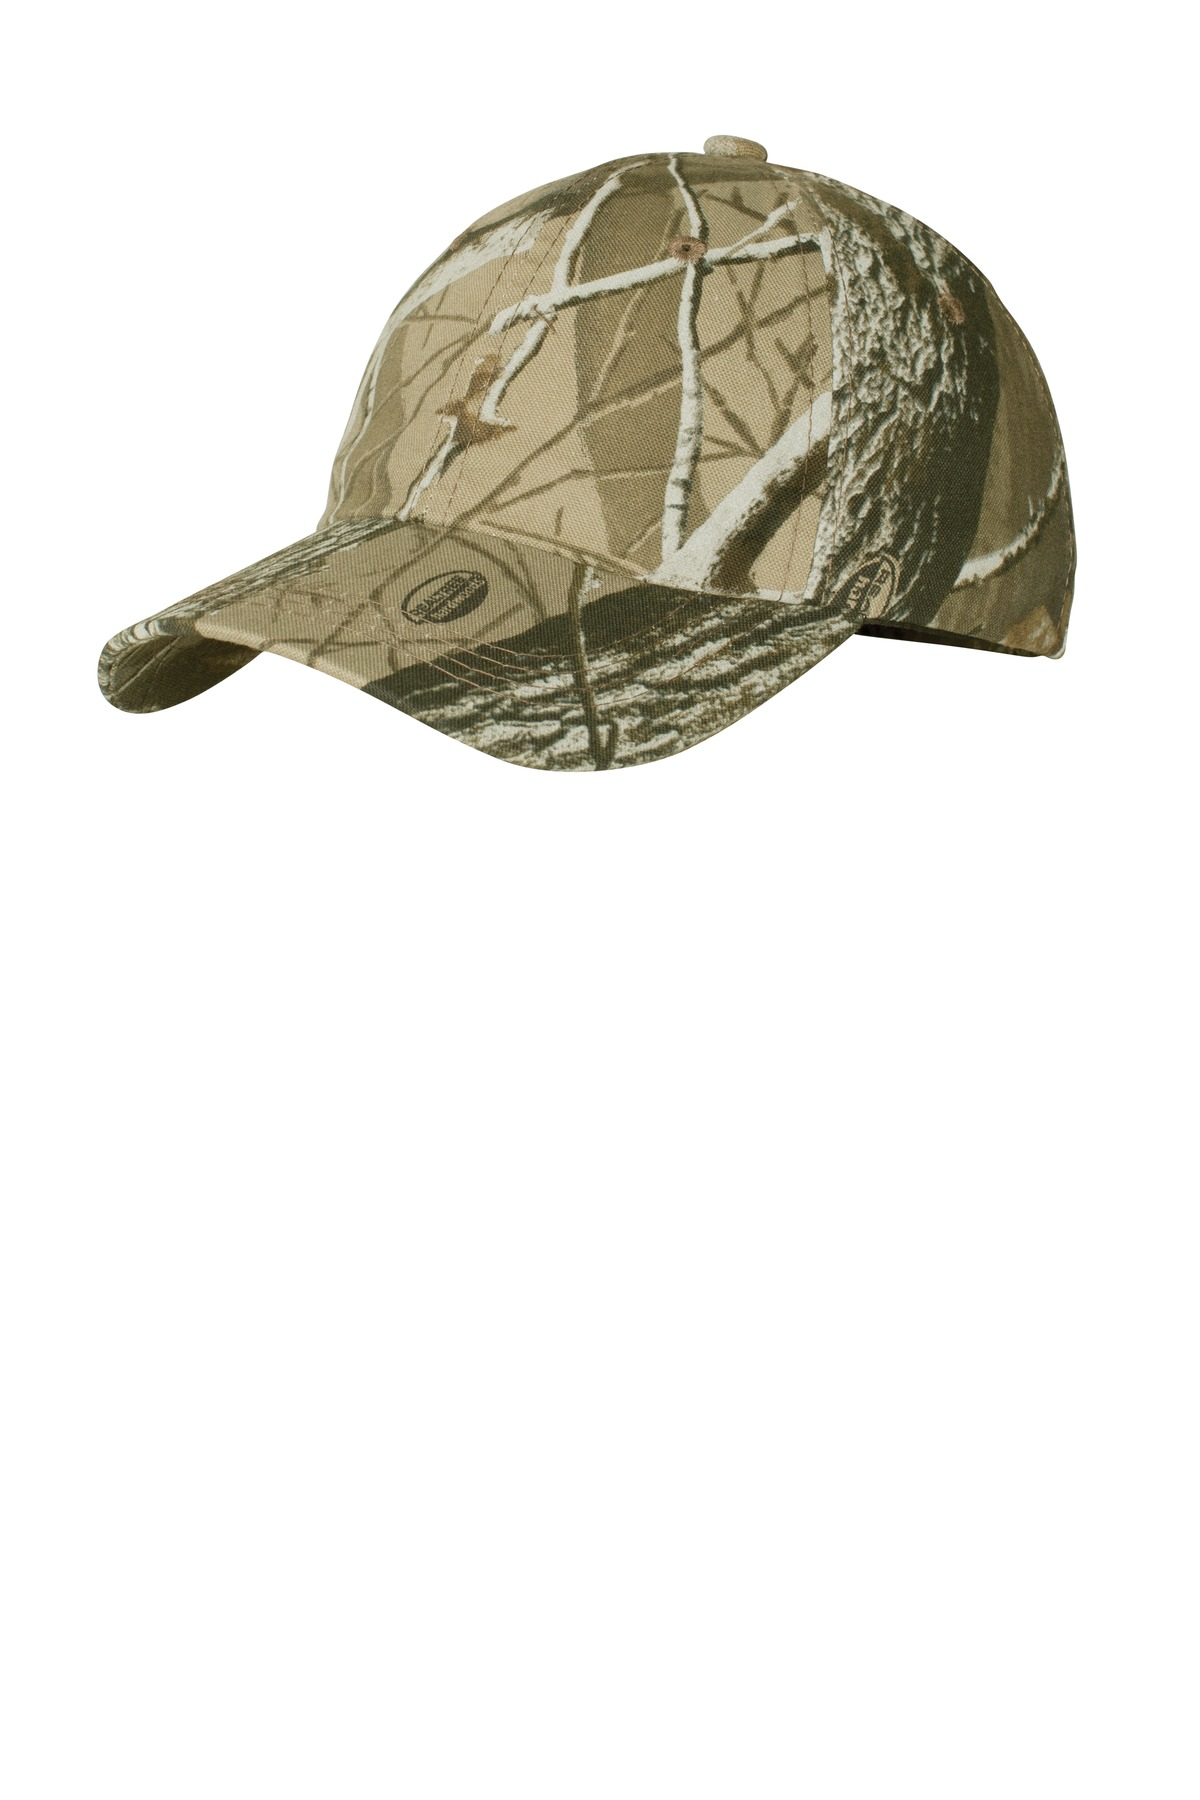 Port Authority ®  Pro Camouflage Series Garment-Washed Cap.  C871 - Realtree Hardwoods